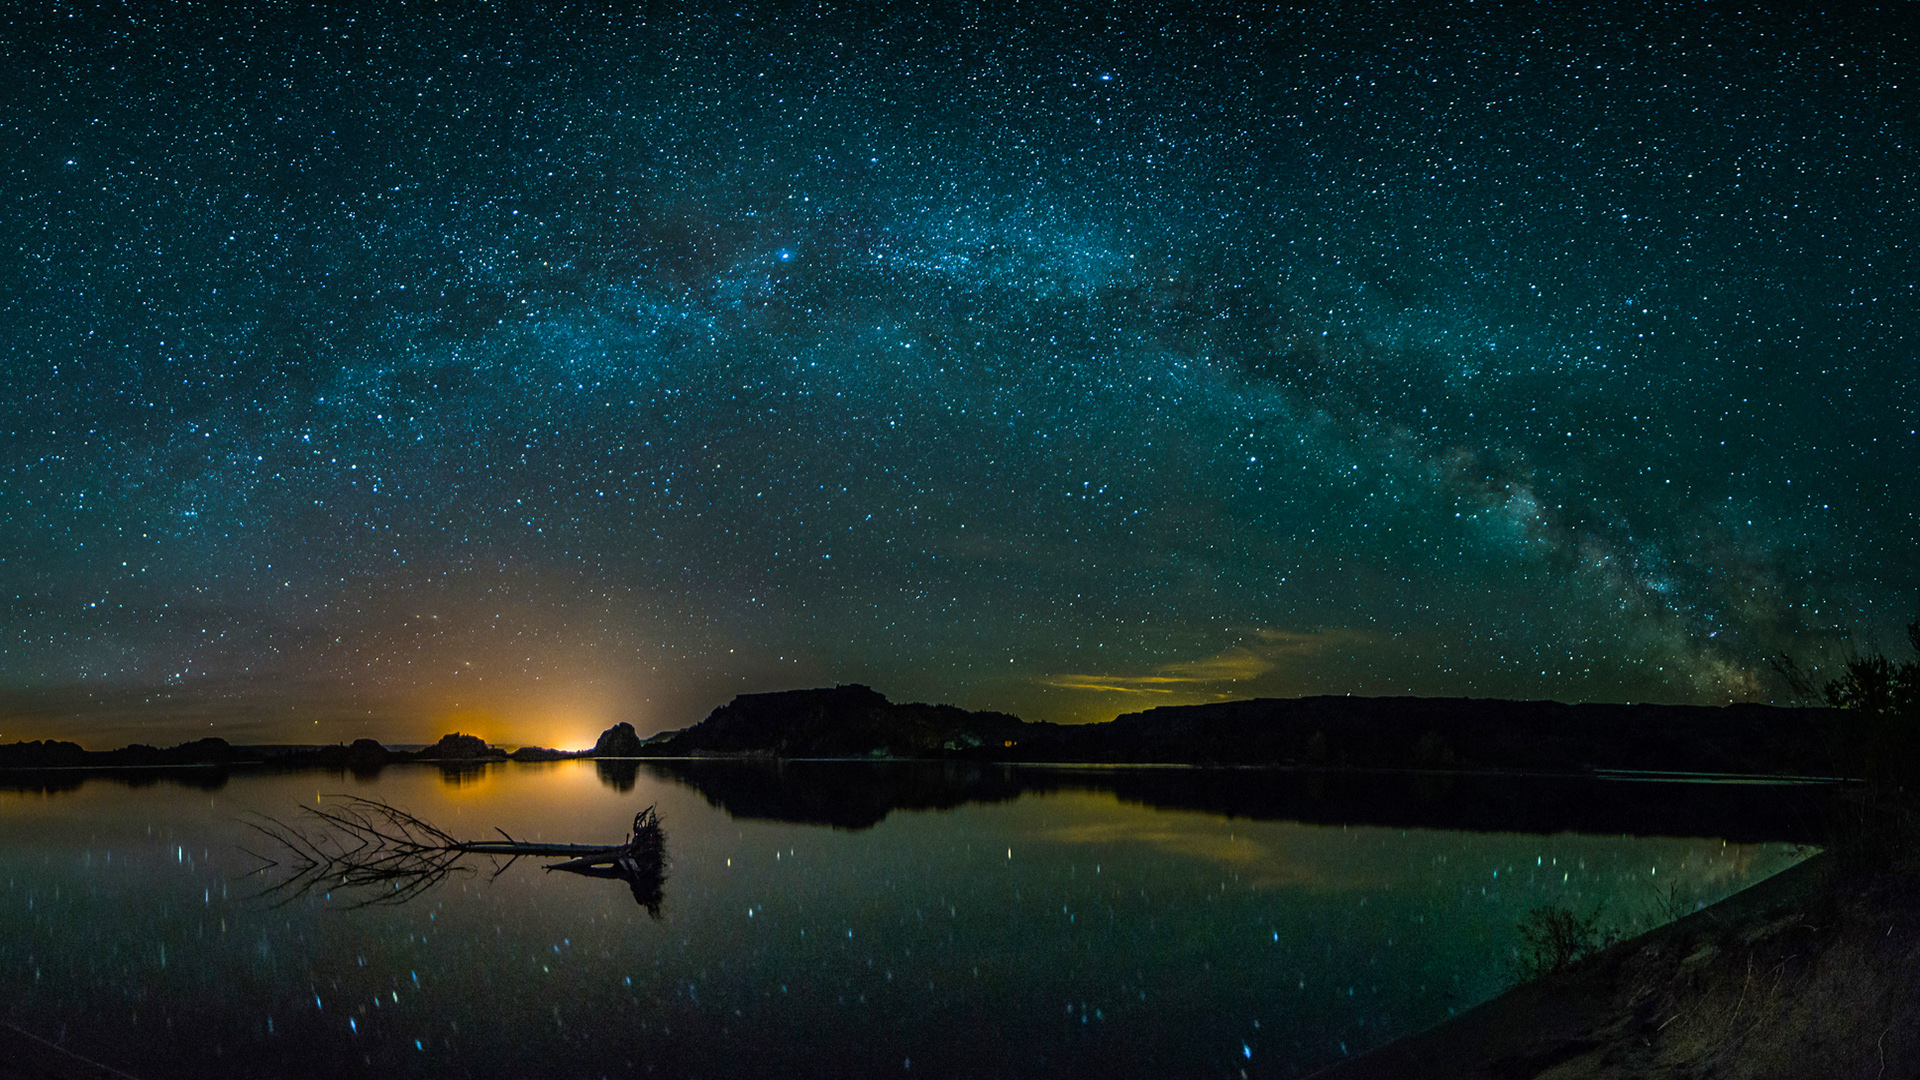 10 mesmerizing hd images of the milky way | hd wallpapers